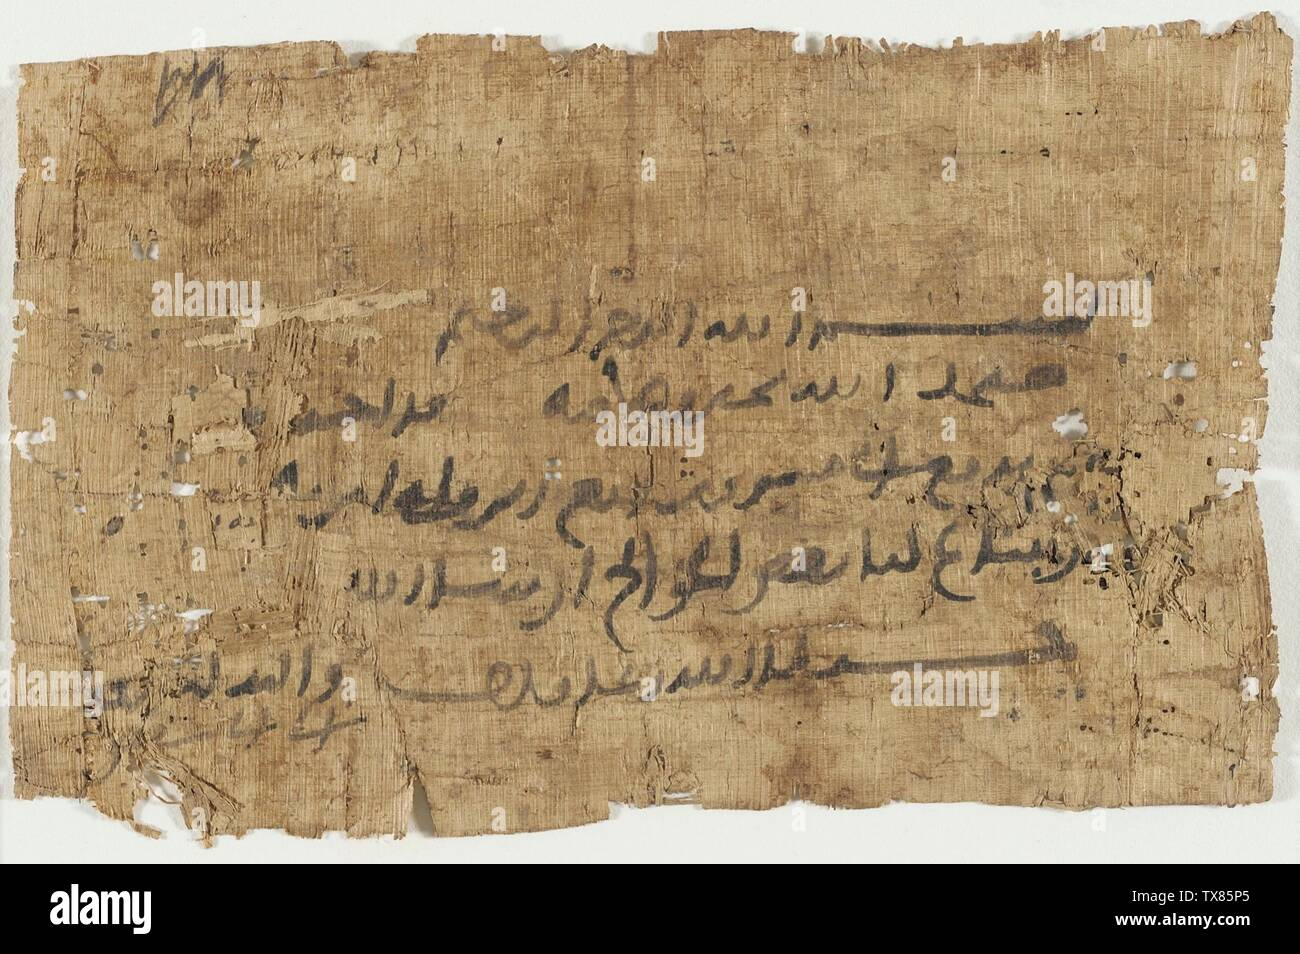 'Letter; English:  Egypt, 7th-9th century Books Ink on papyrus 5 1/4 x 8 1/4 in. (13.33 x 20.95 cm); Mount:  14 1/4 x 19 1/4 in. (36.19 x 48.89 cm) The Madina Collection of Islamic Art, gift of Camilla Chandler Frost (M.2002.1.366) Islamic Art; 7th-9th century; ' - Stock Image